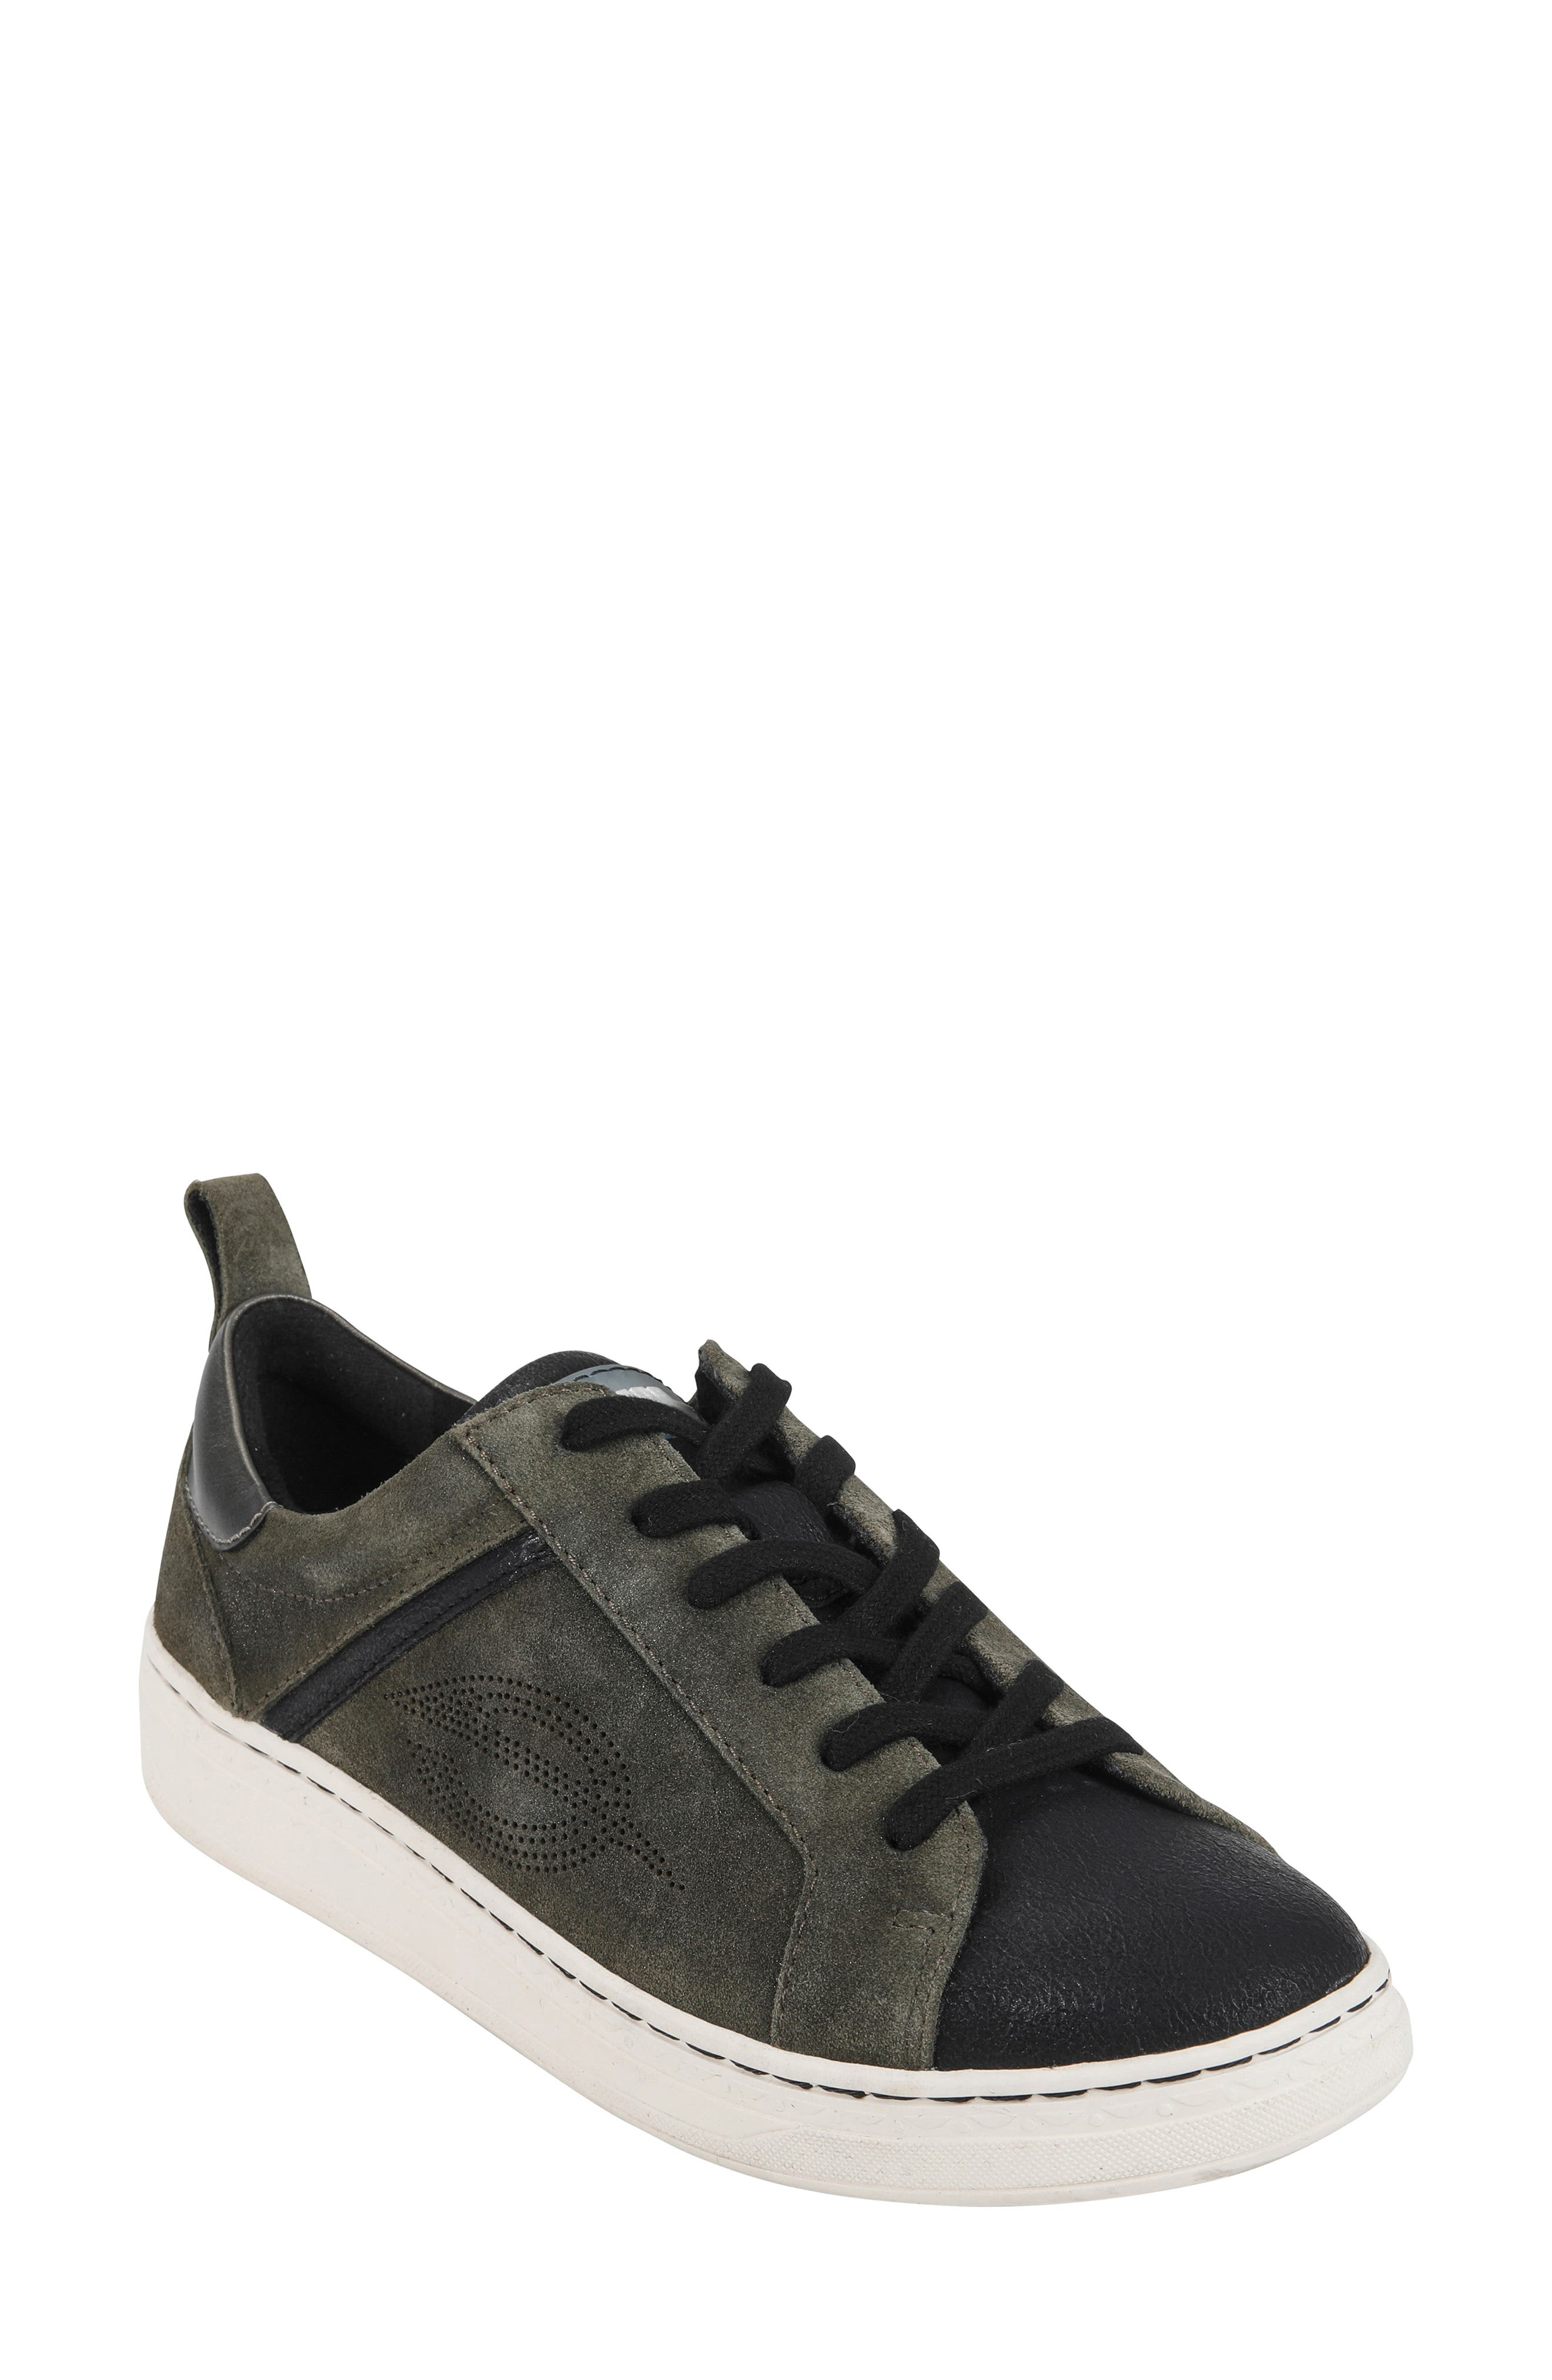 Zinnia Low Top Sneaker,                         Main,                         color, BLACK METALLIC FAUX LEATHER